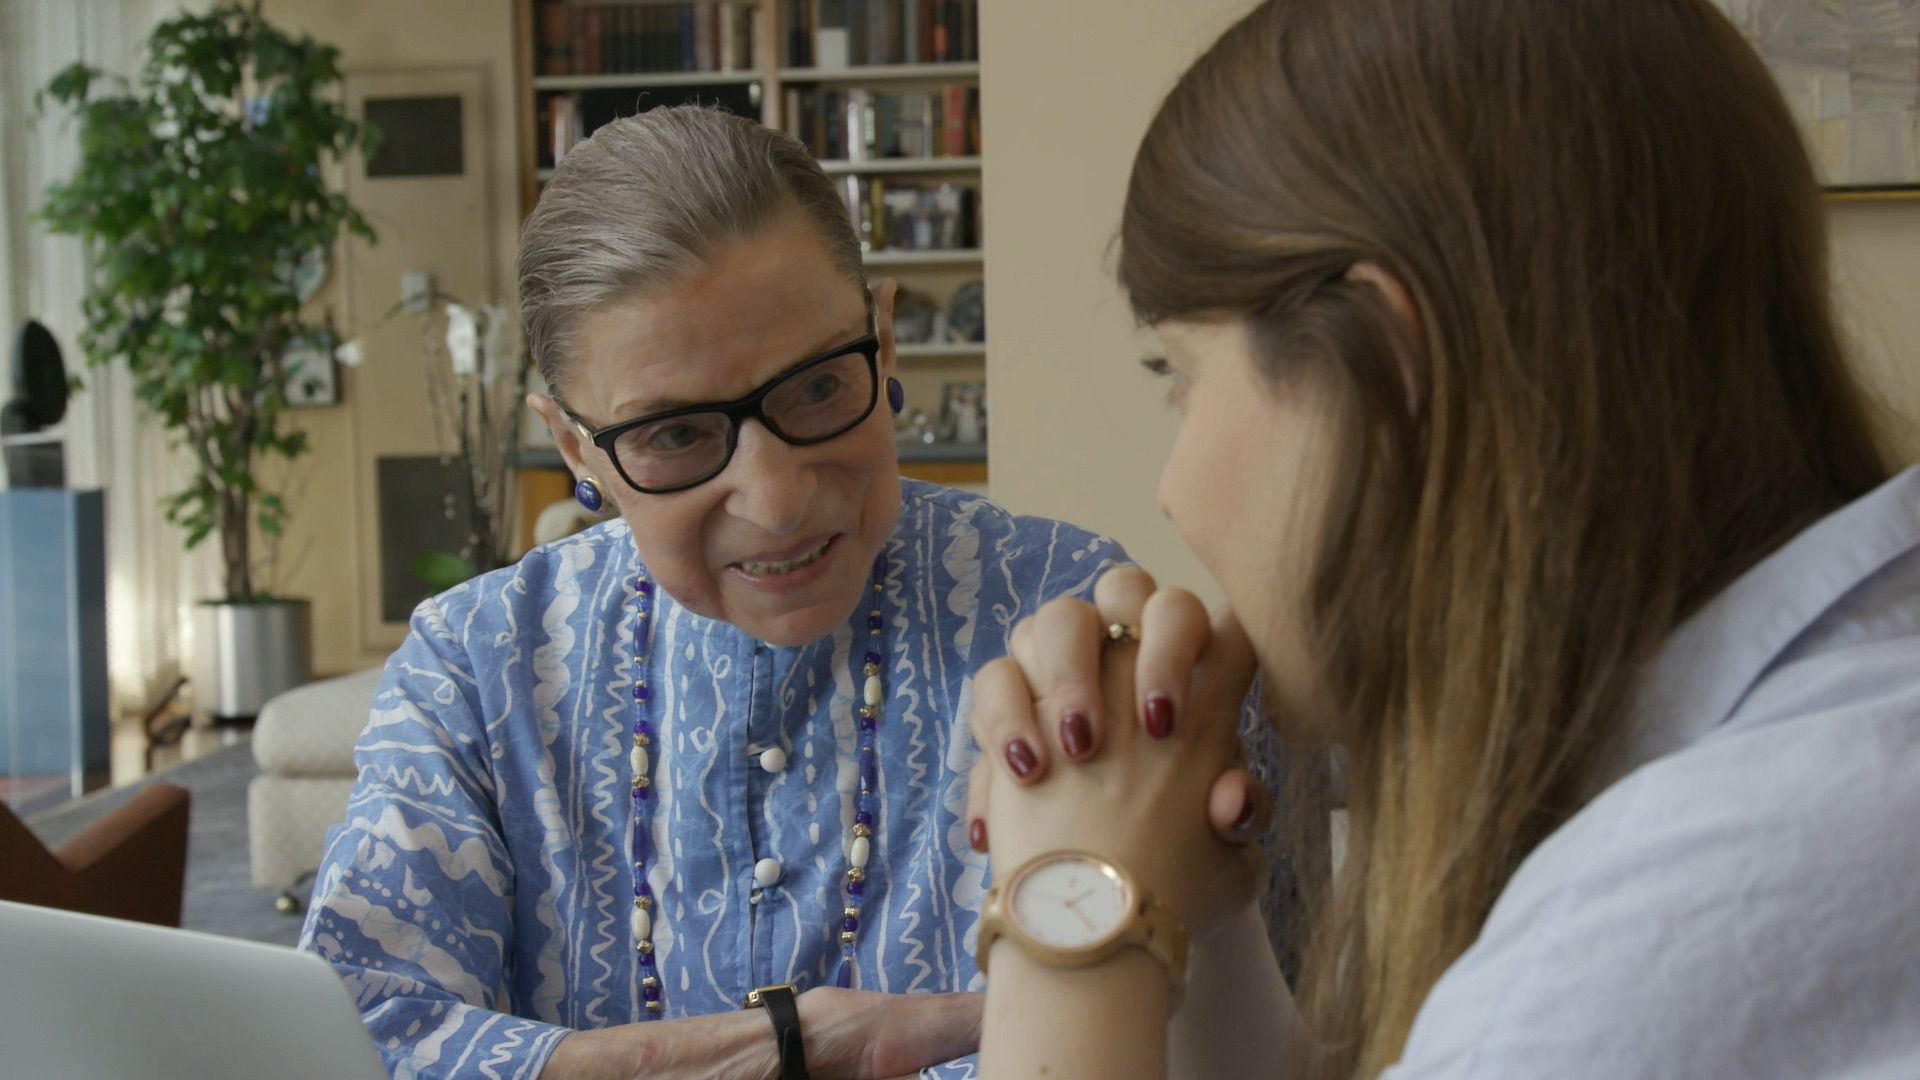 U.S. Supreme Court Justice Ruth Bader Ginsburg talks to her granddaughter Clara Spera in RBG, directed by Betsy West and Julie Cohen. Courtesy of CNN Films.